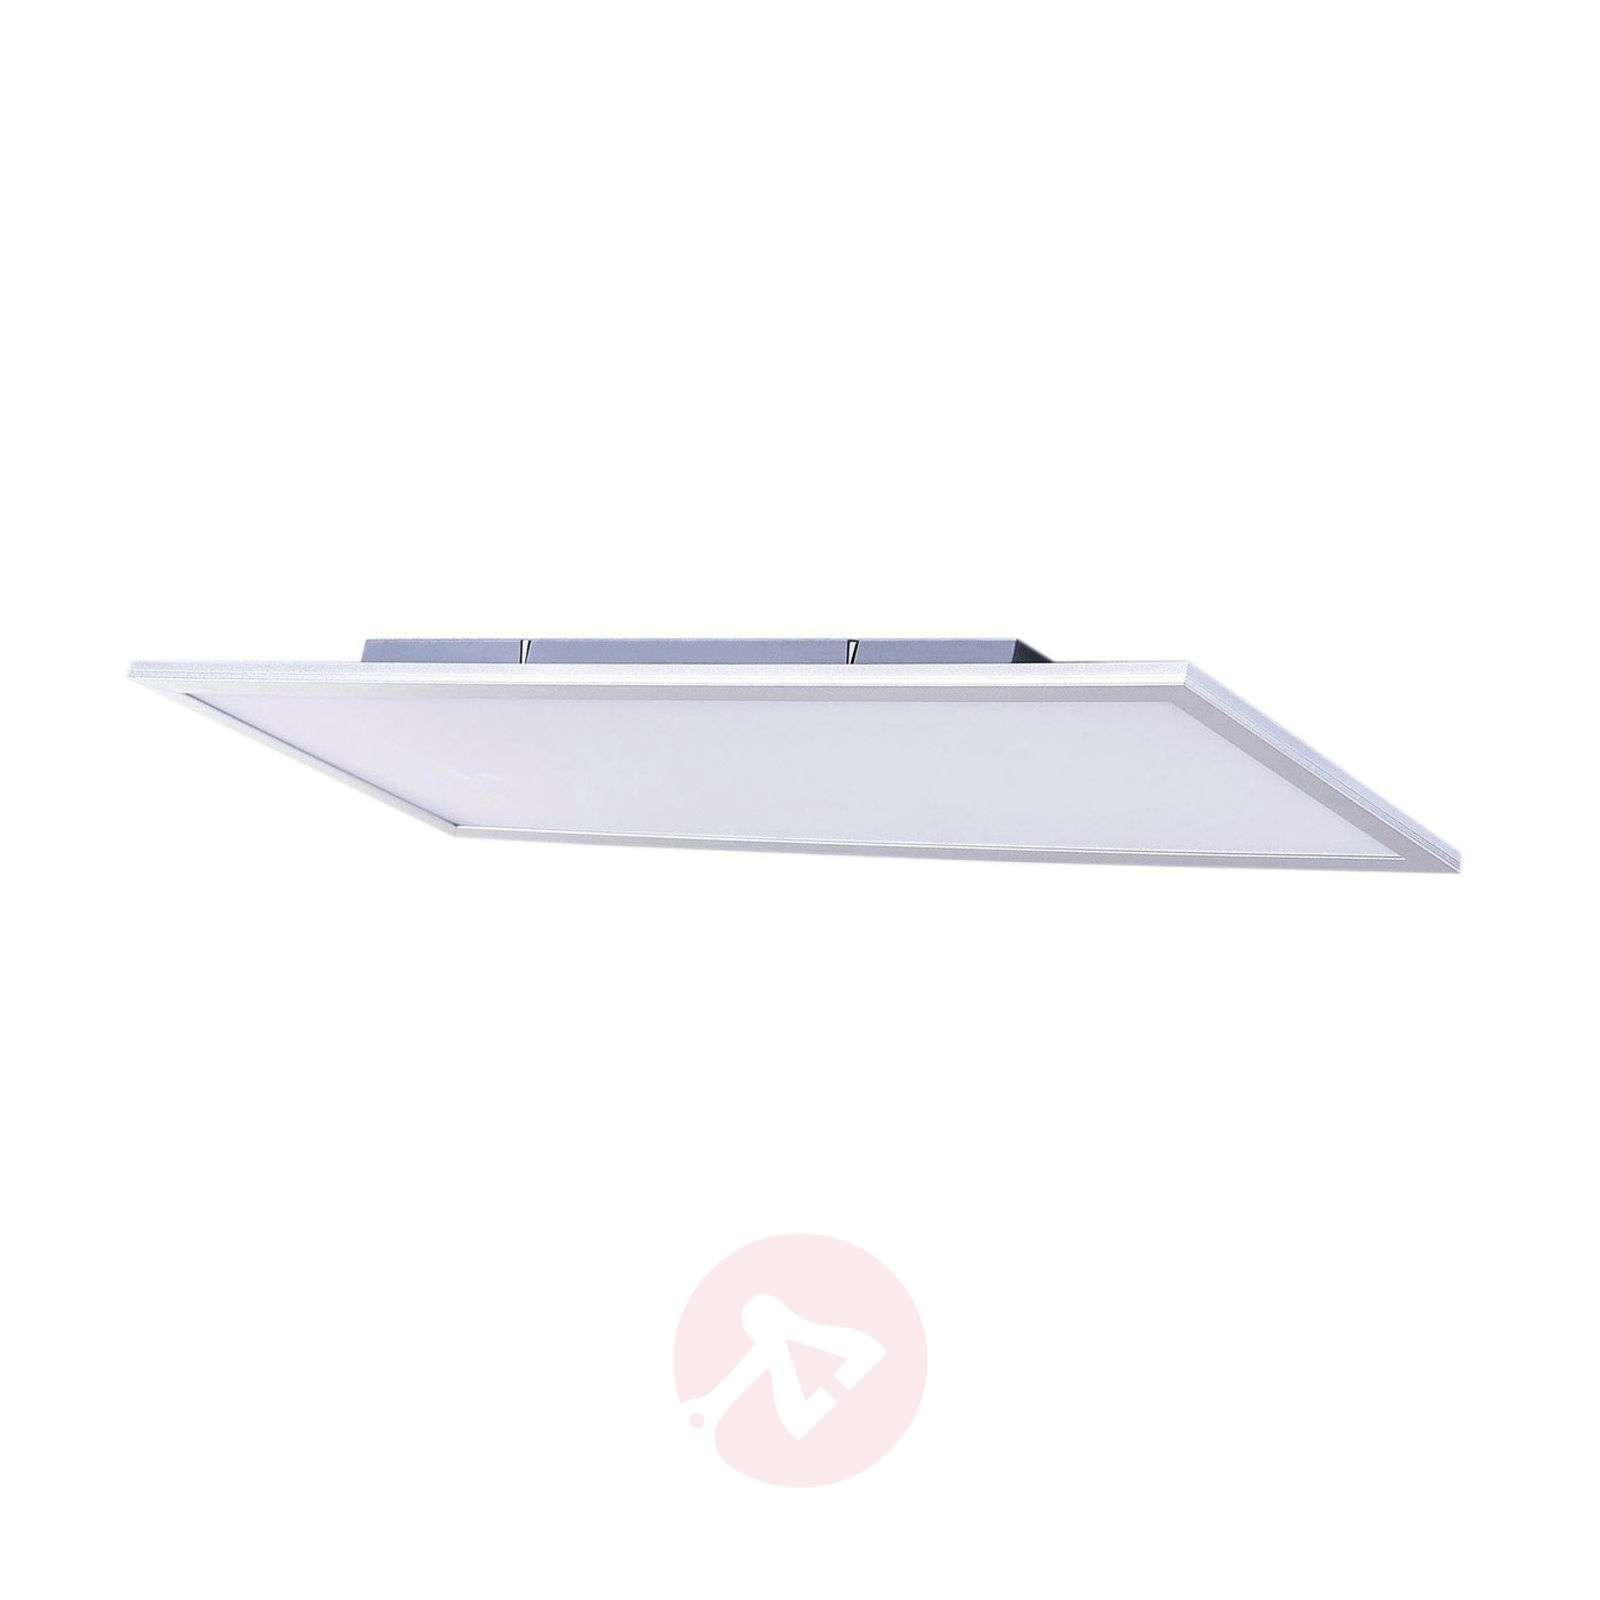 Dimmable LED panel Liv with remote control-9956008-01